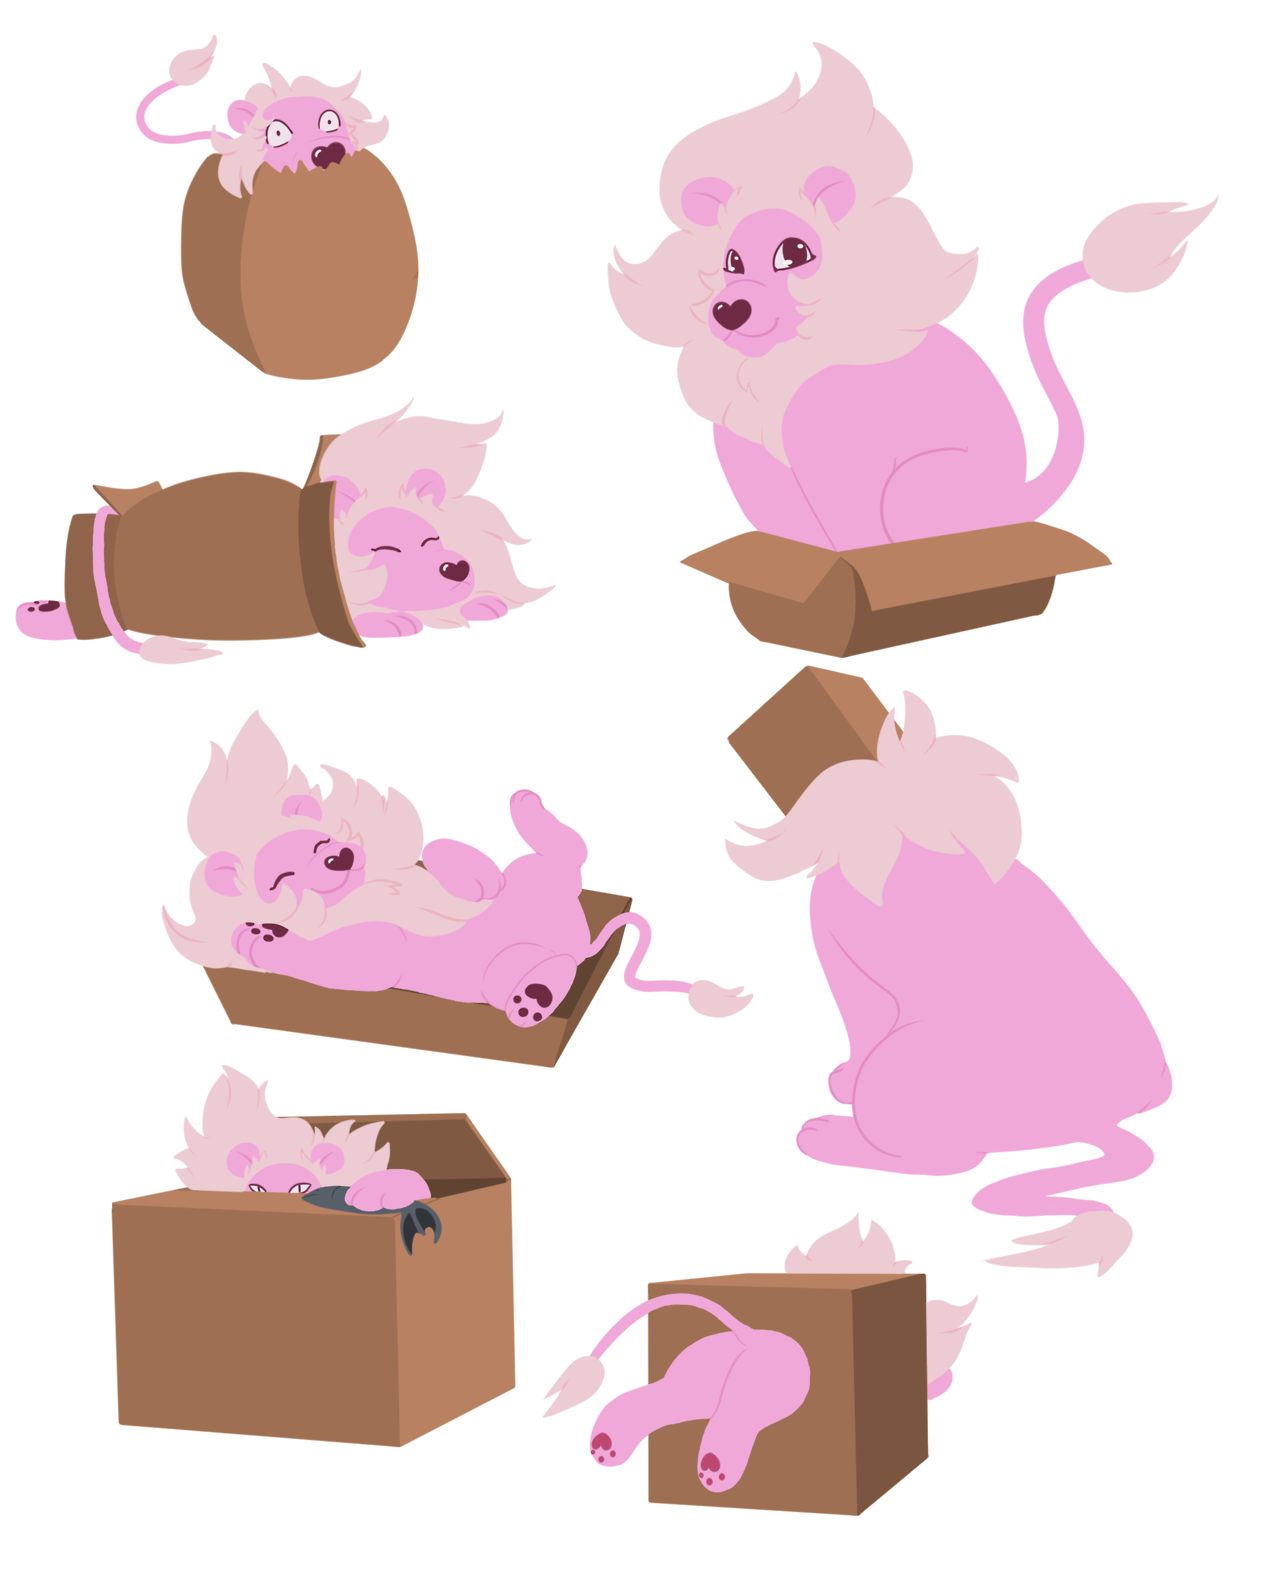 Took some inspiration from Maru to draw Lion playing around in boxes.